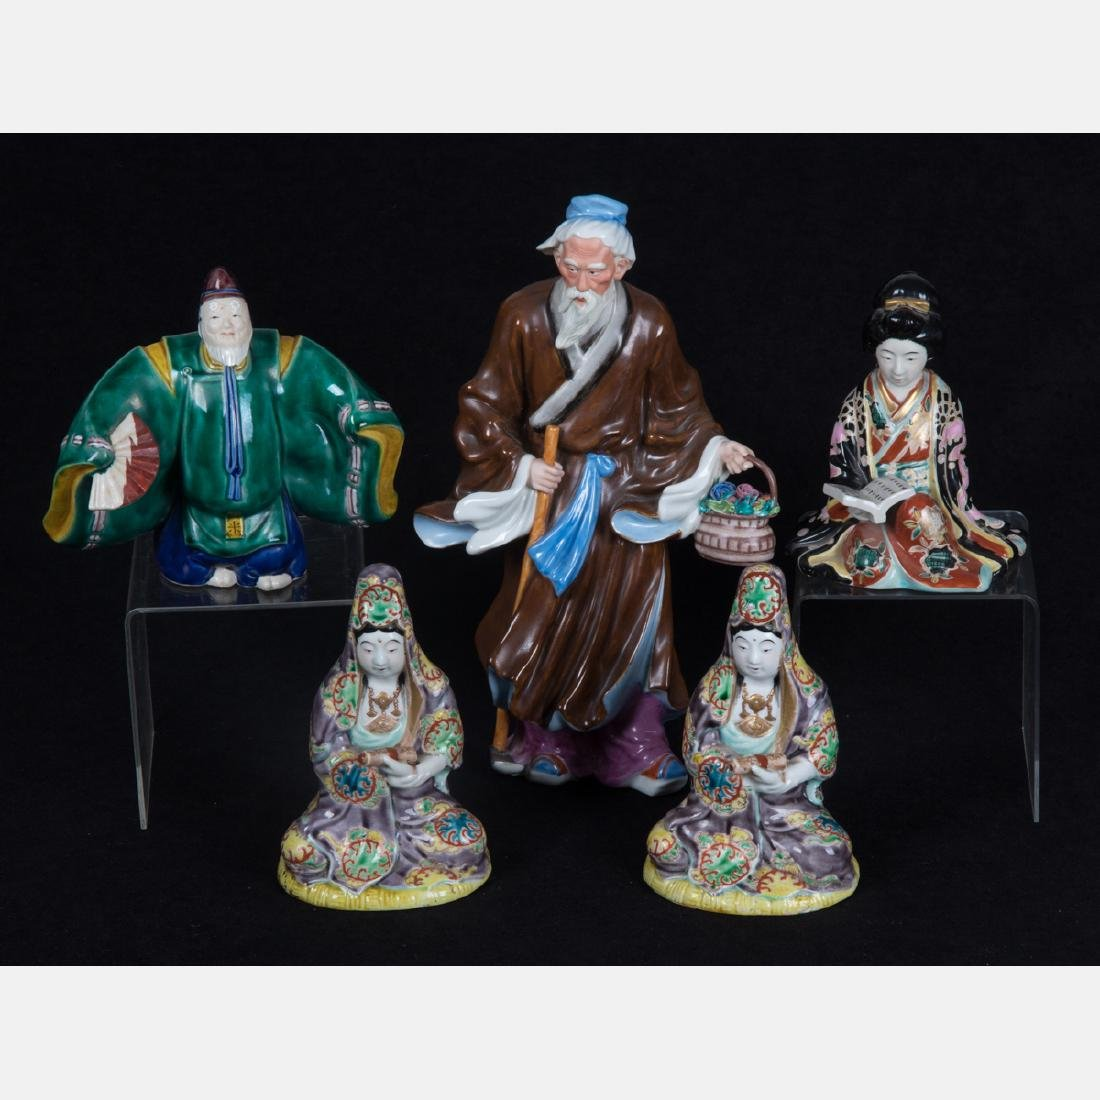 A Group of Five Japanese Porcelain Figurines, 20th